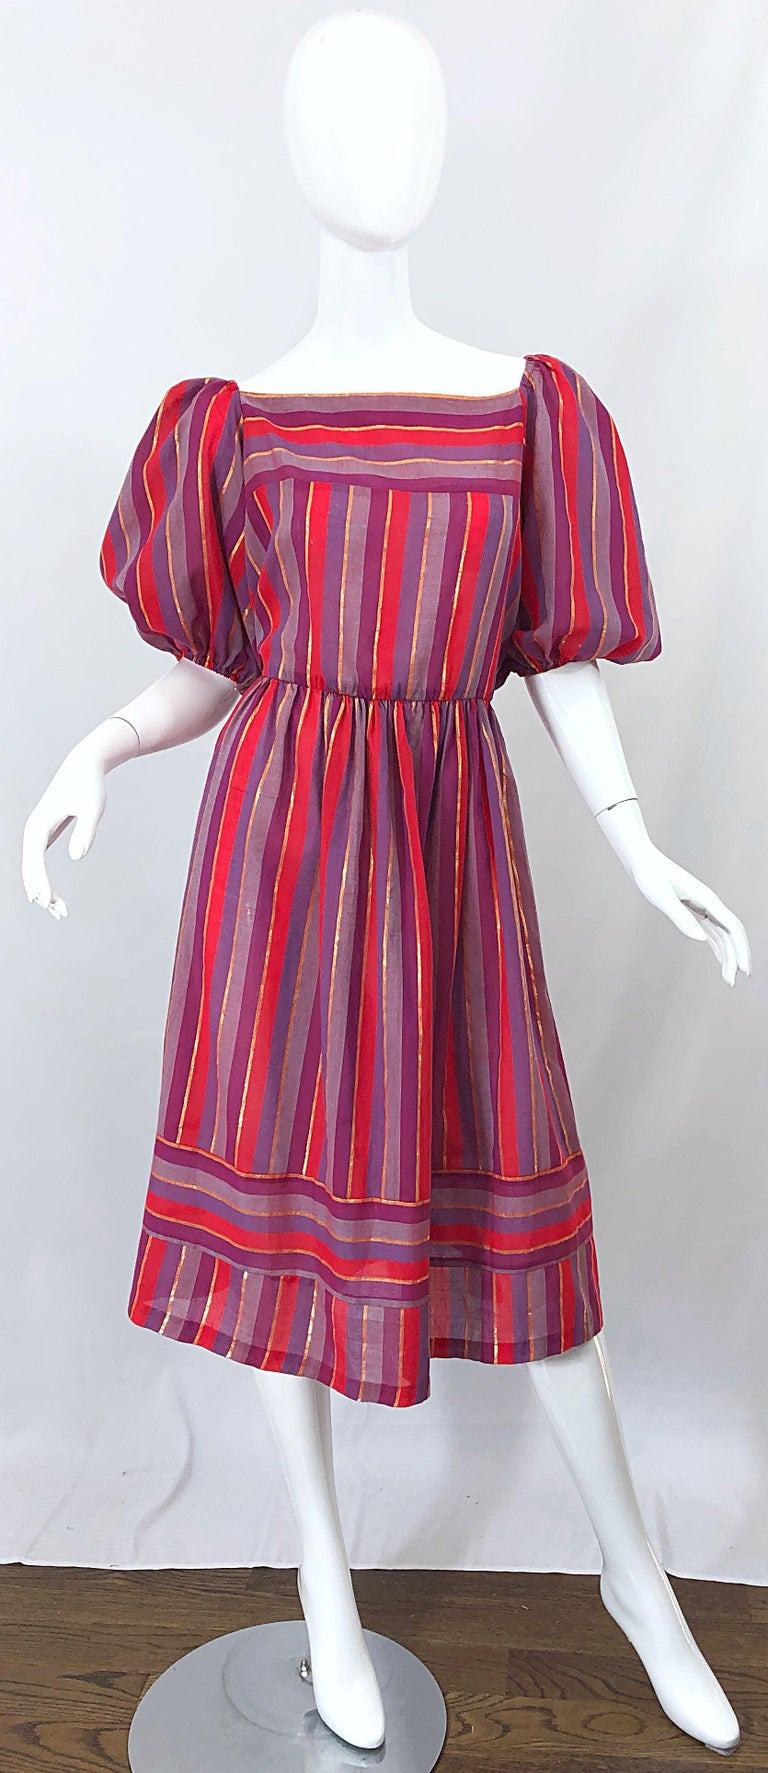 1970s Boho Chic Red + Purple + Gold Striped Cotton Voile 70s Vintage Dress For Sale 11